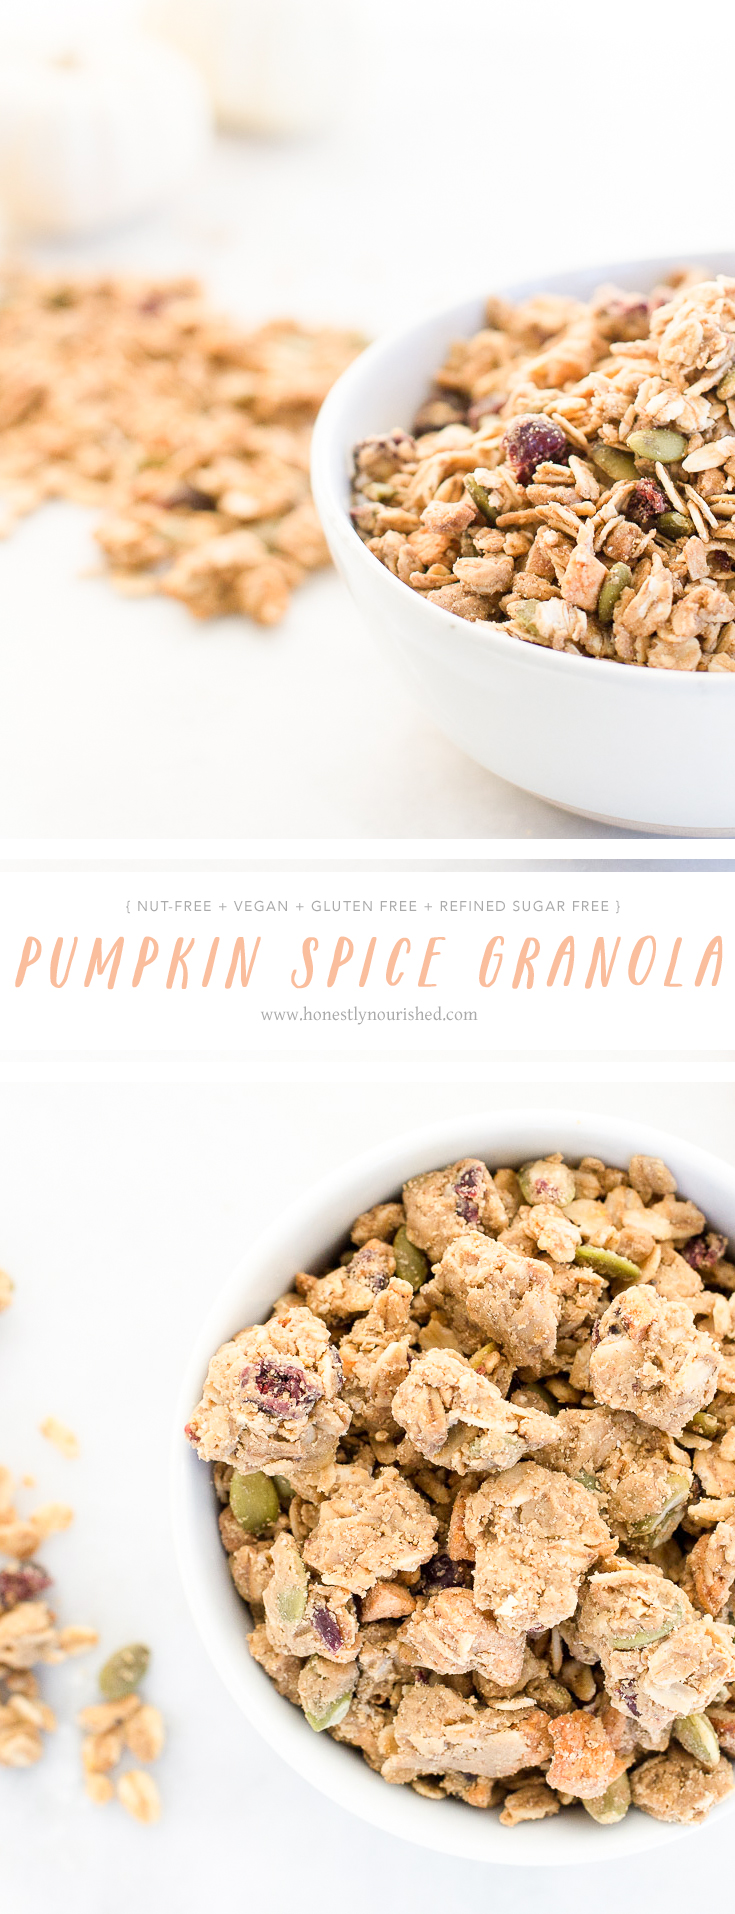 A nut-free pumpkin spice cranberry apple granola full of mega clusters galore!  It's also full of seasonal fall fruits (dried apples and cranberries), pumpkin seeds, and toasted coconut for a healthful balanced snack, breakfast or froyo topping.the-go snacking to boot!